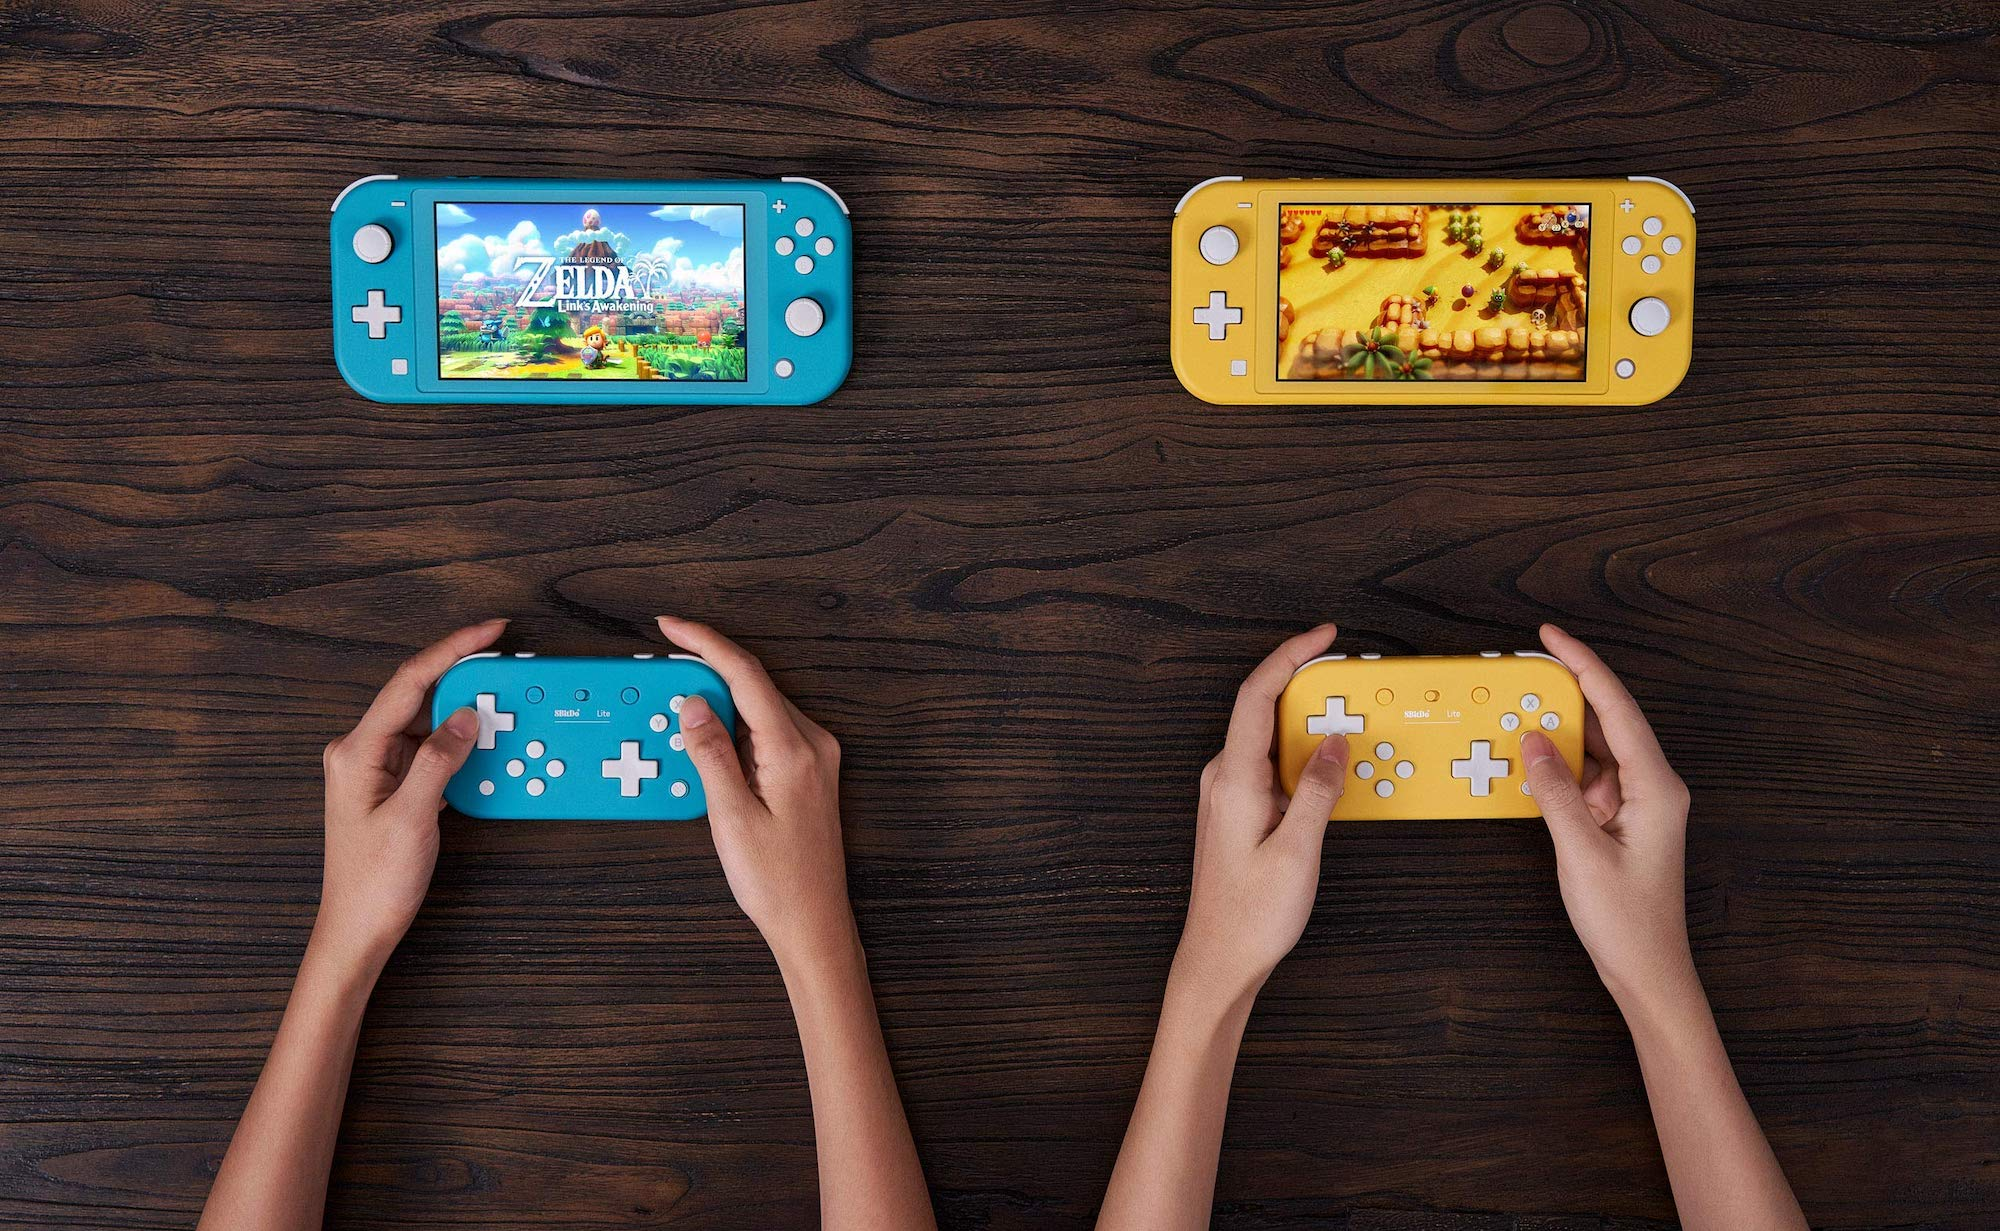 8Bitdo Lite Retro Bluetooth Gamepad works with multiple gaming platforms